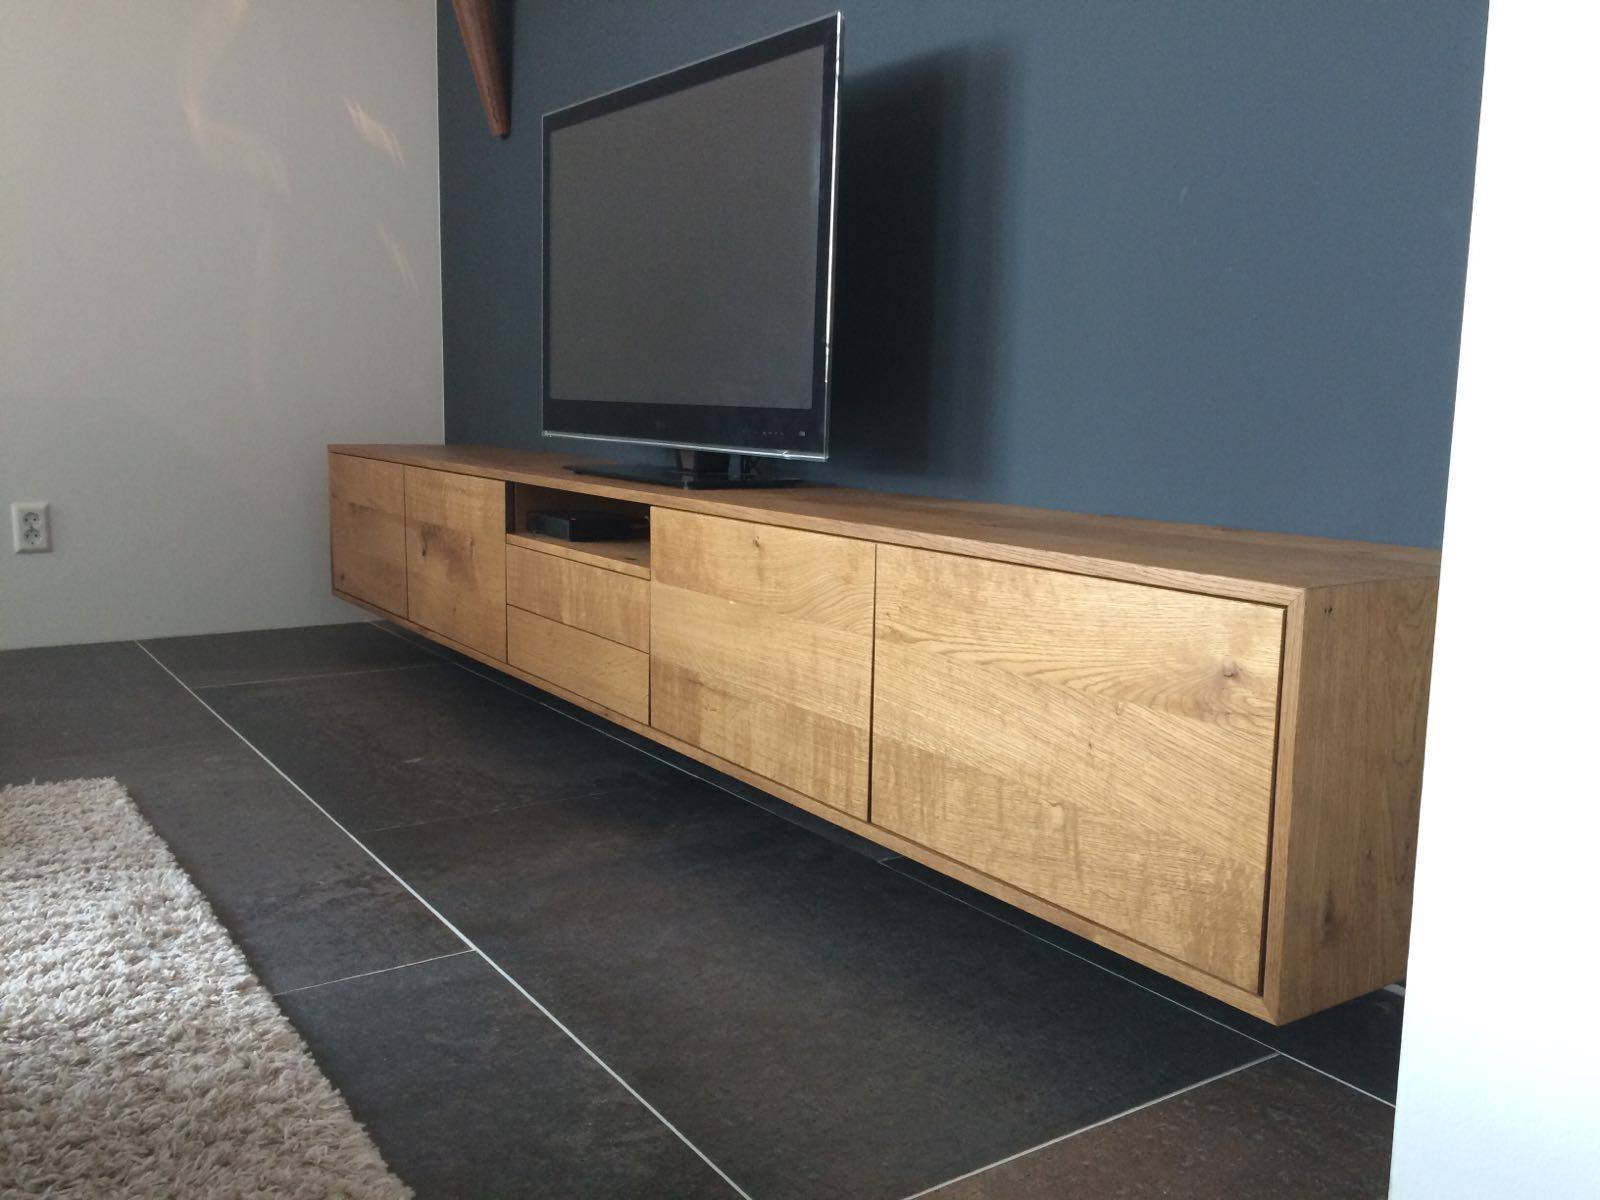 Dressoir Tv Kast Wit.Wit Hoogglans Dressoir Meubel Of Massief Houten Tv Meubel